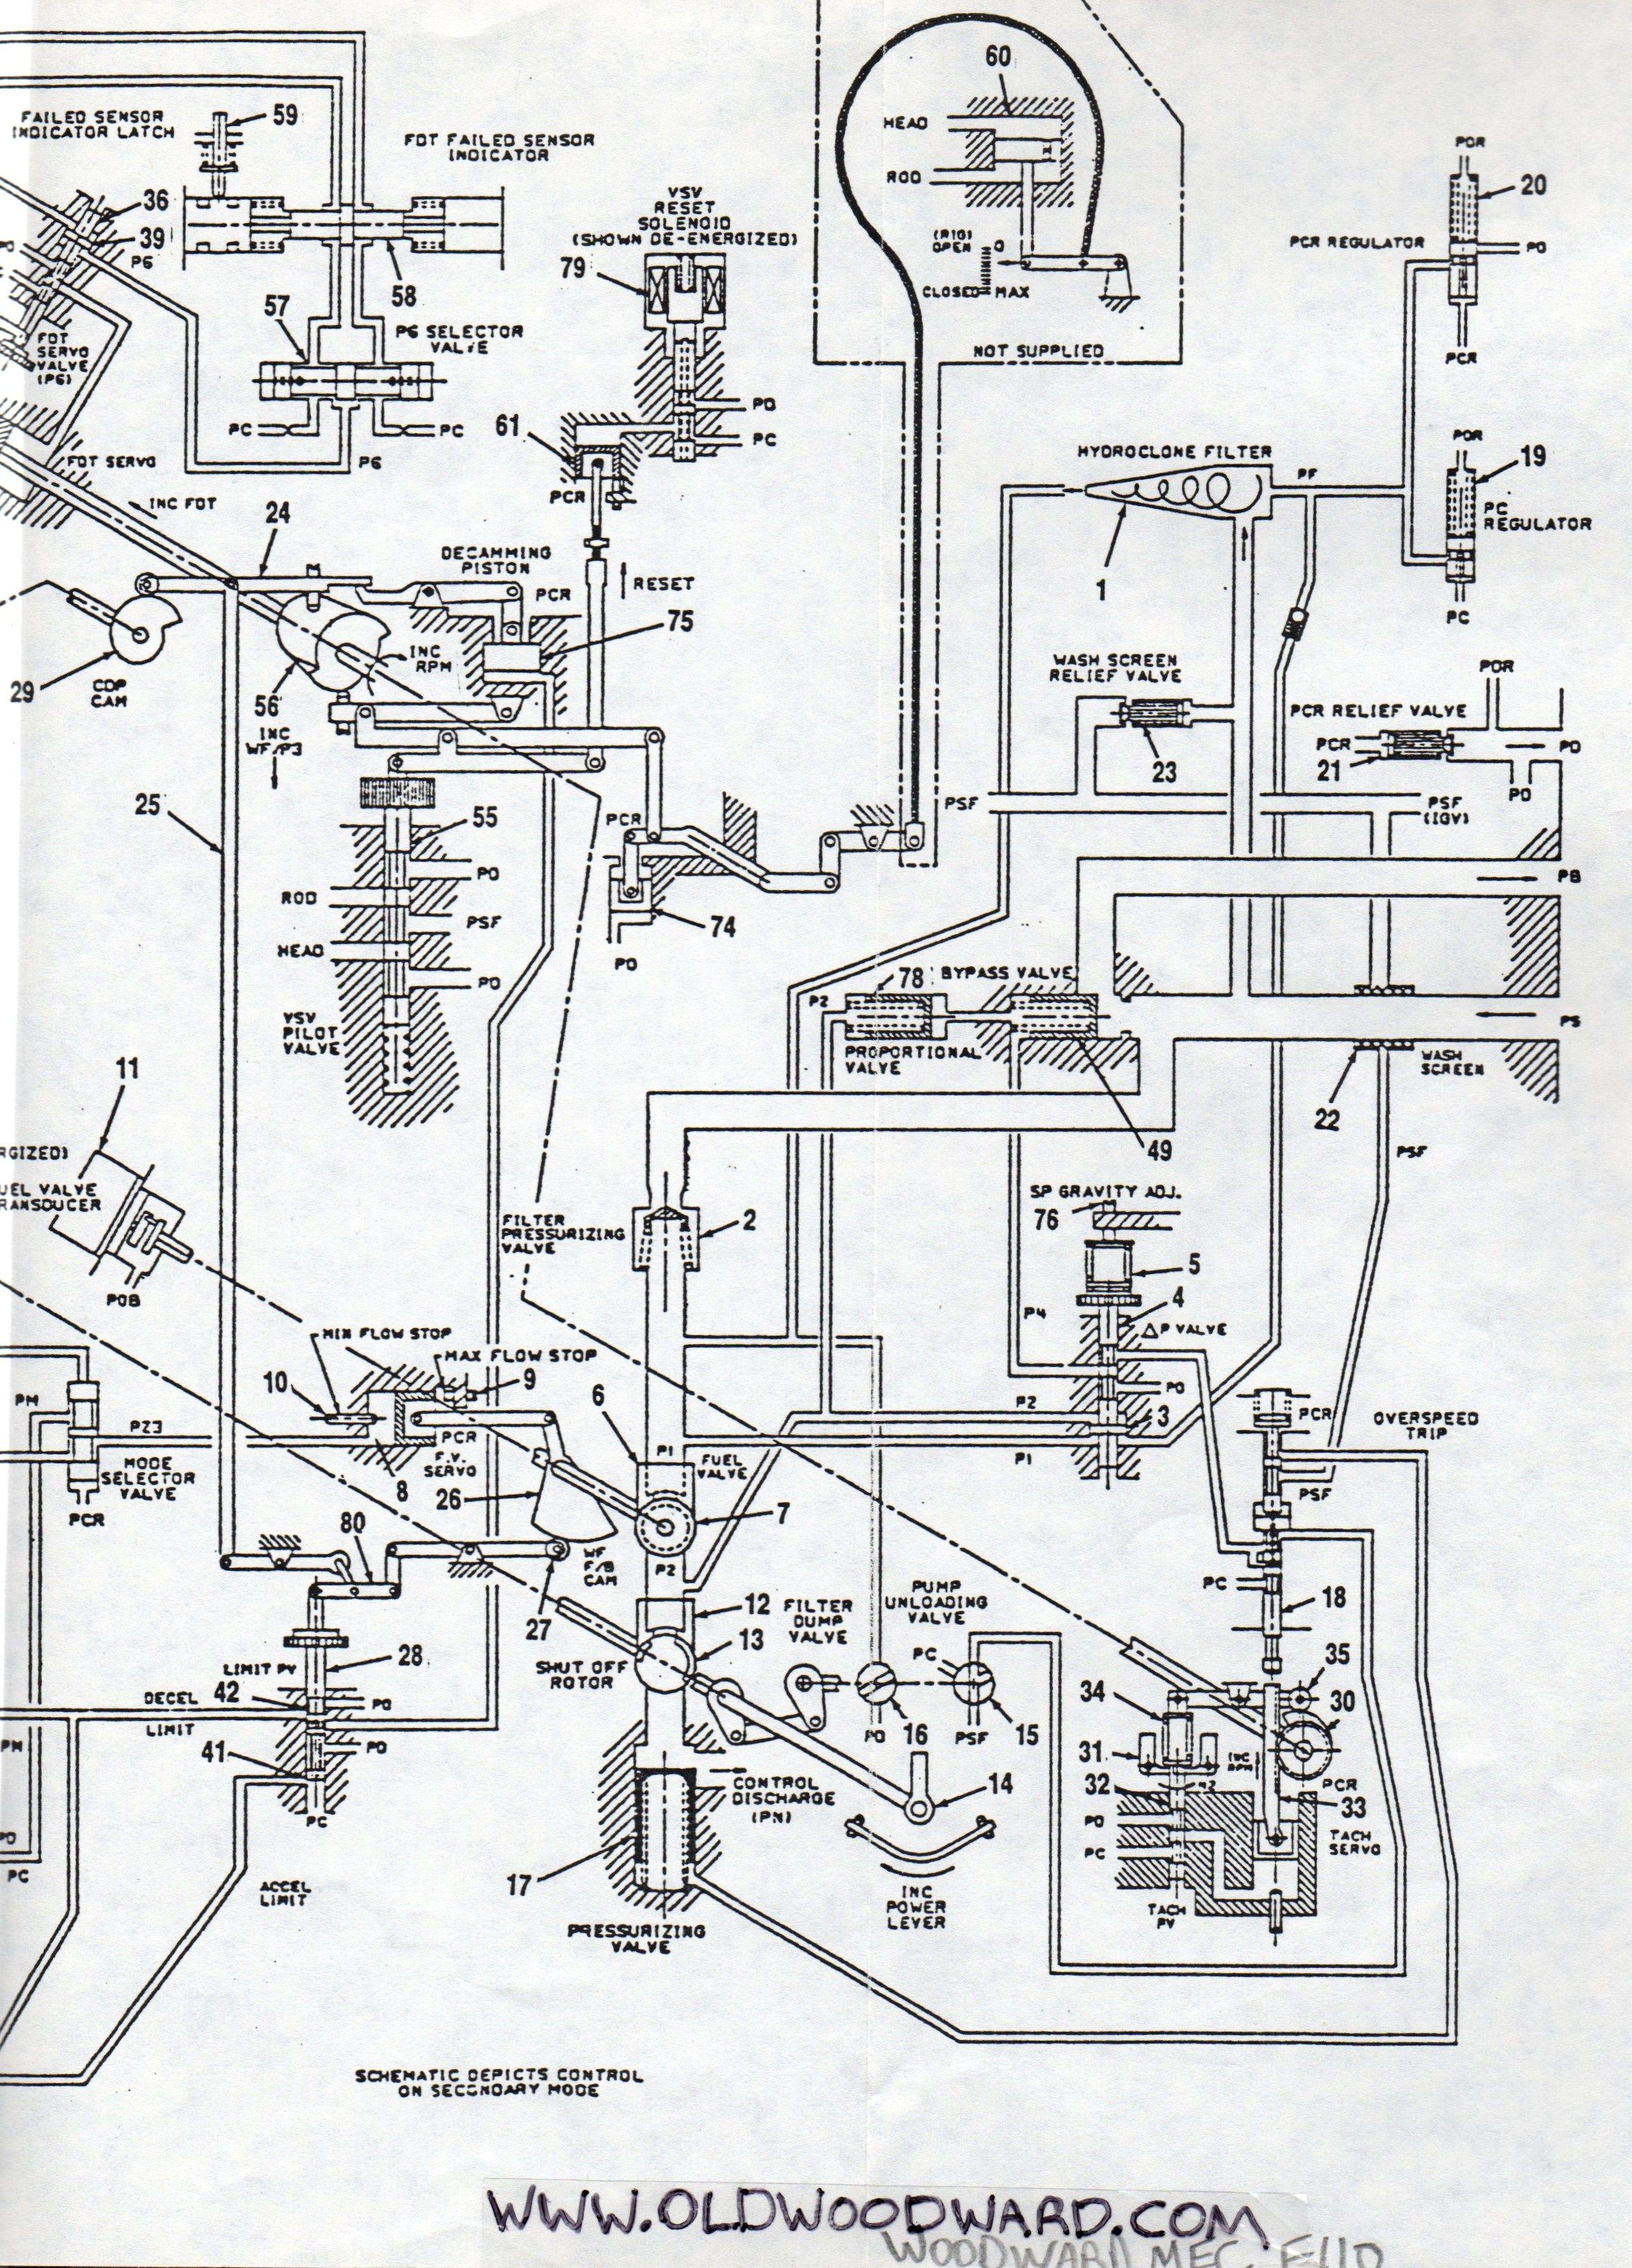 Woodward Governor Company S Control System Schematic For The General Electric F110 Series Jet Engine Turbojet Engine Schematic Drawing Engineering